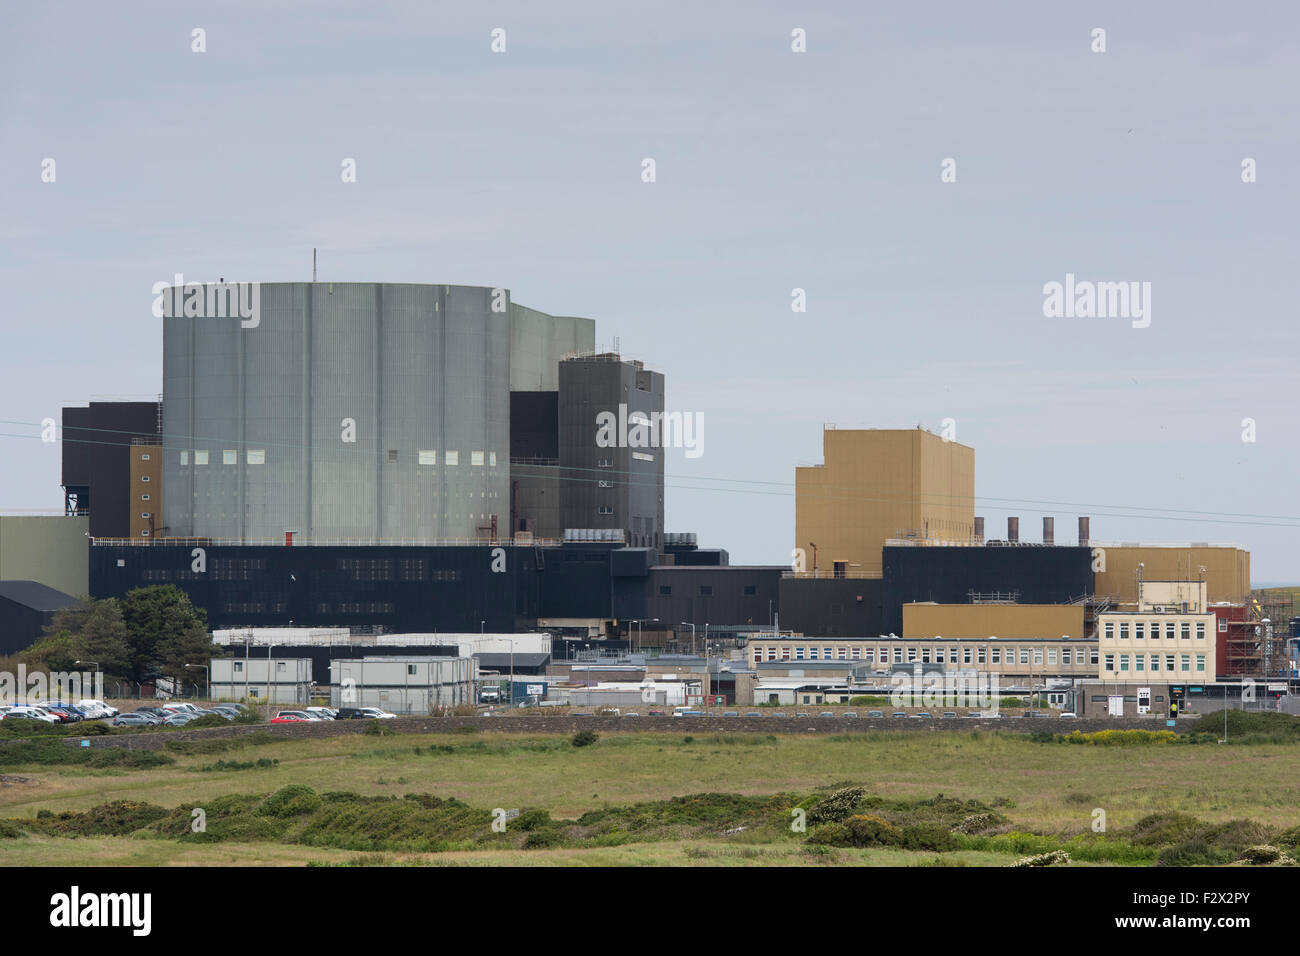 A general view of the disused Magnox Trawsfynydd nuclear power station in Gwynedd, Wales. Stock Photo